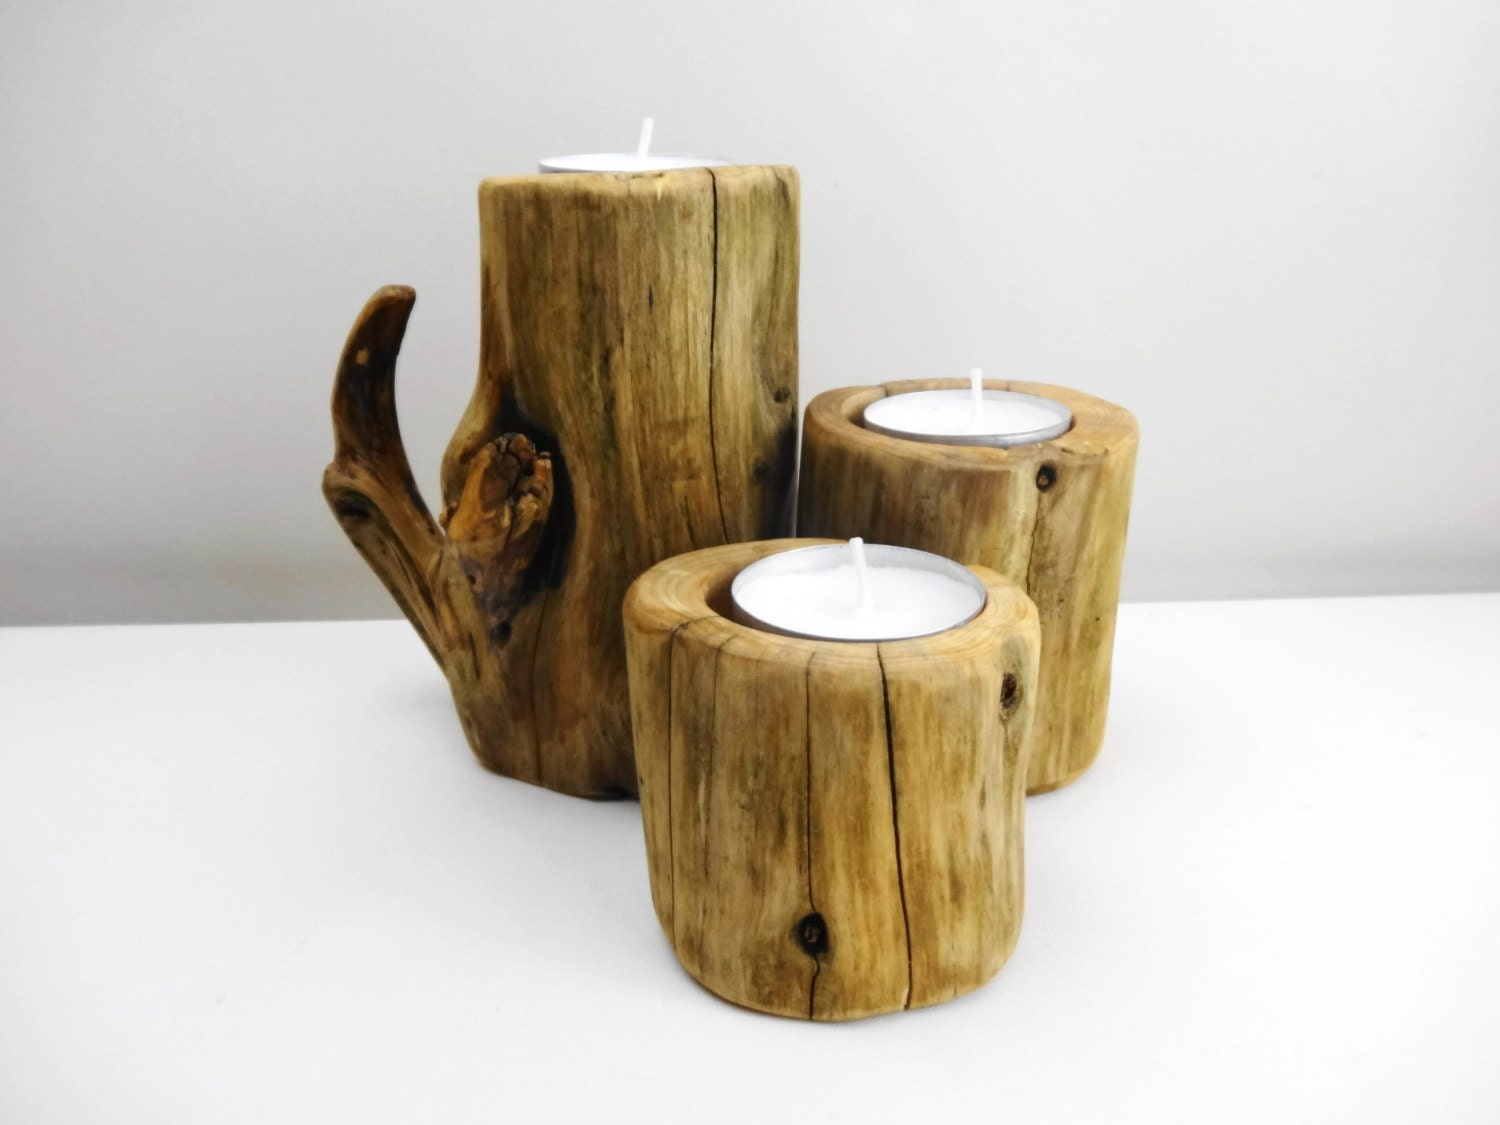 Wood Candle Holders Wooden Candle Holder Branch By